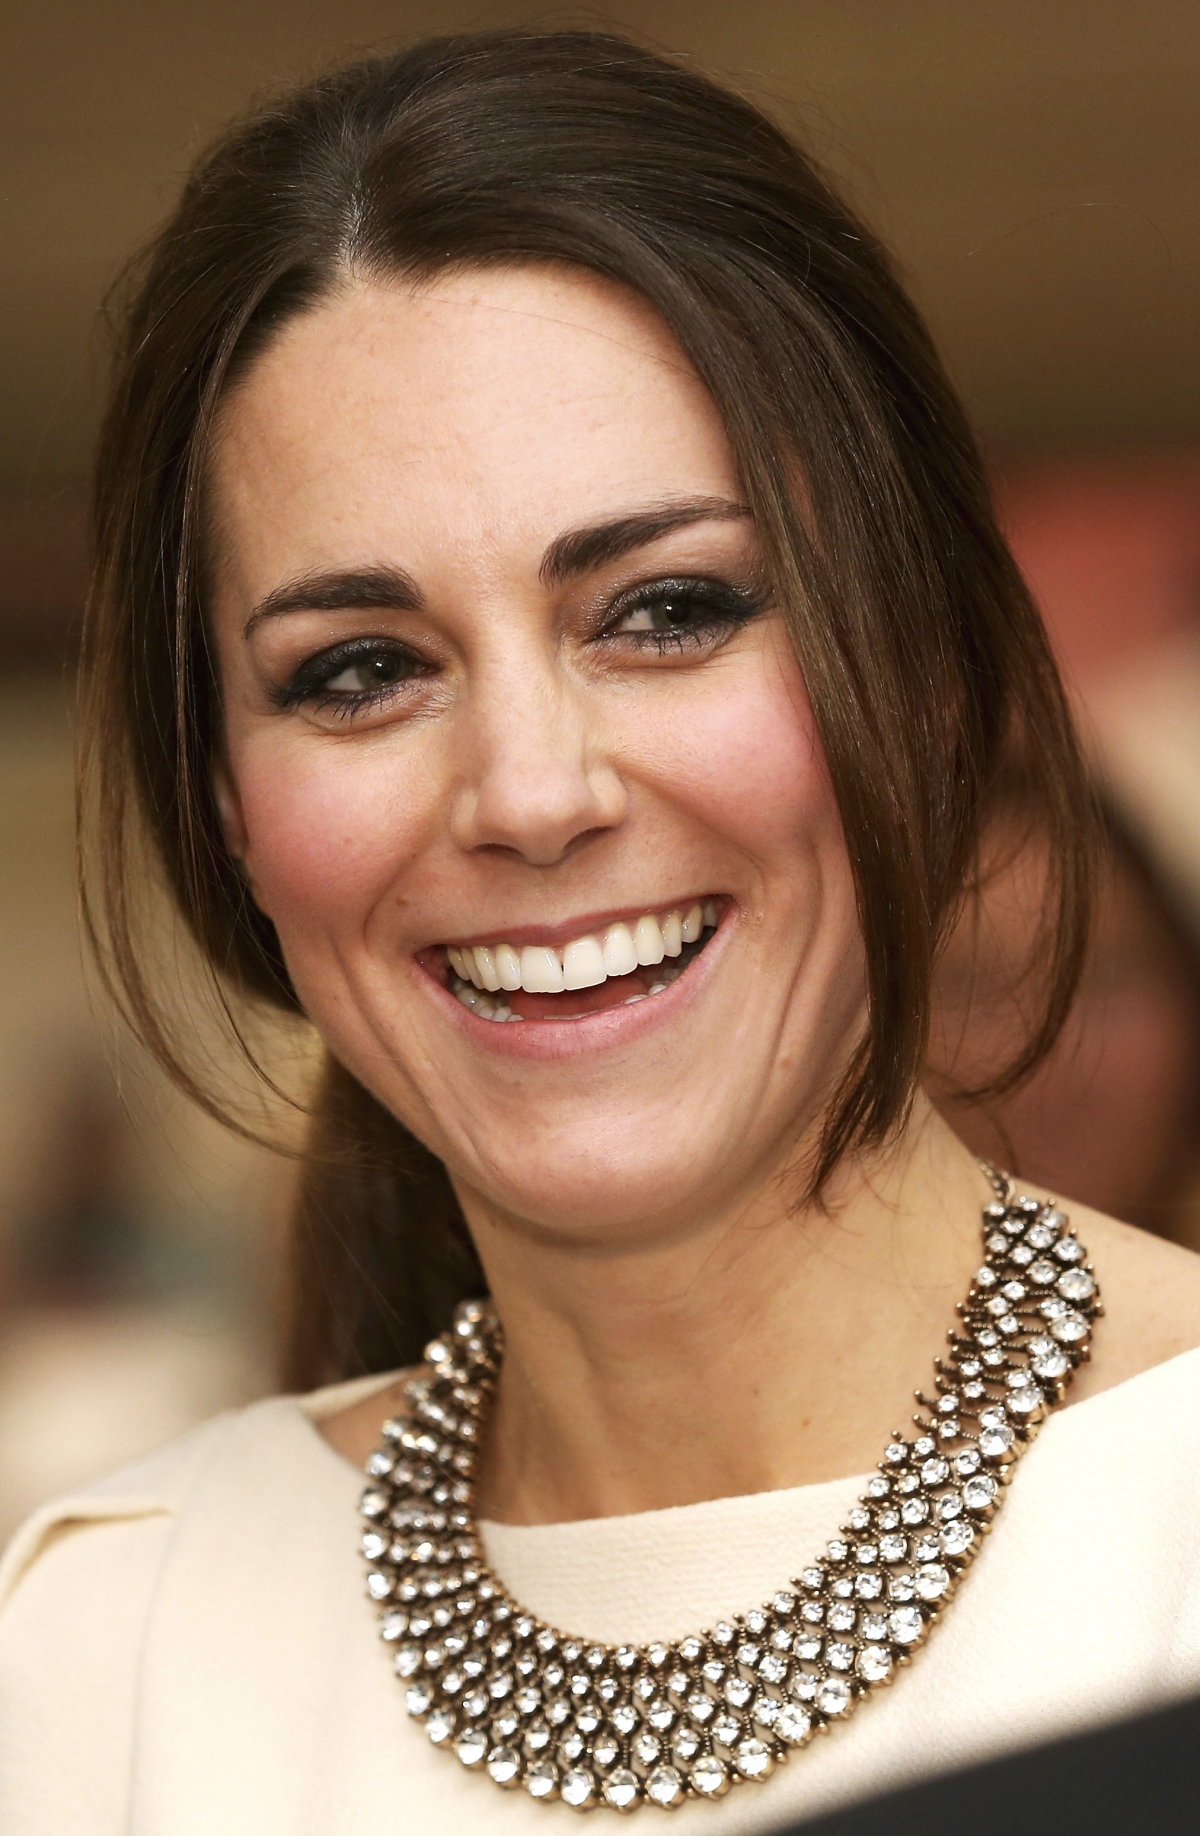 Catherine, the Duchess of Cambridge at the Roy